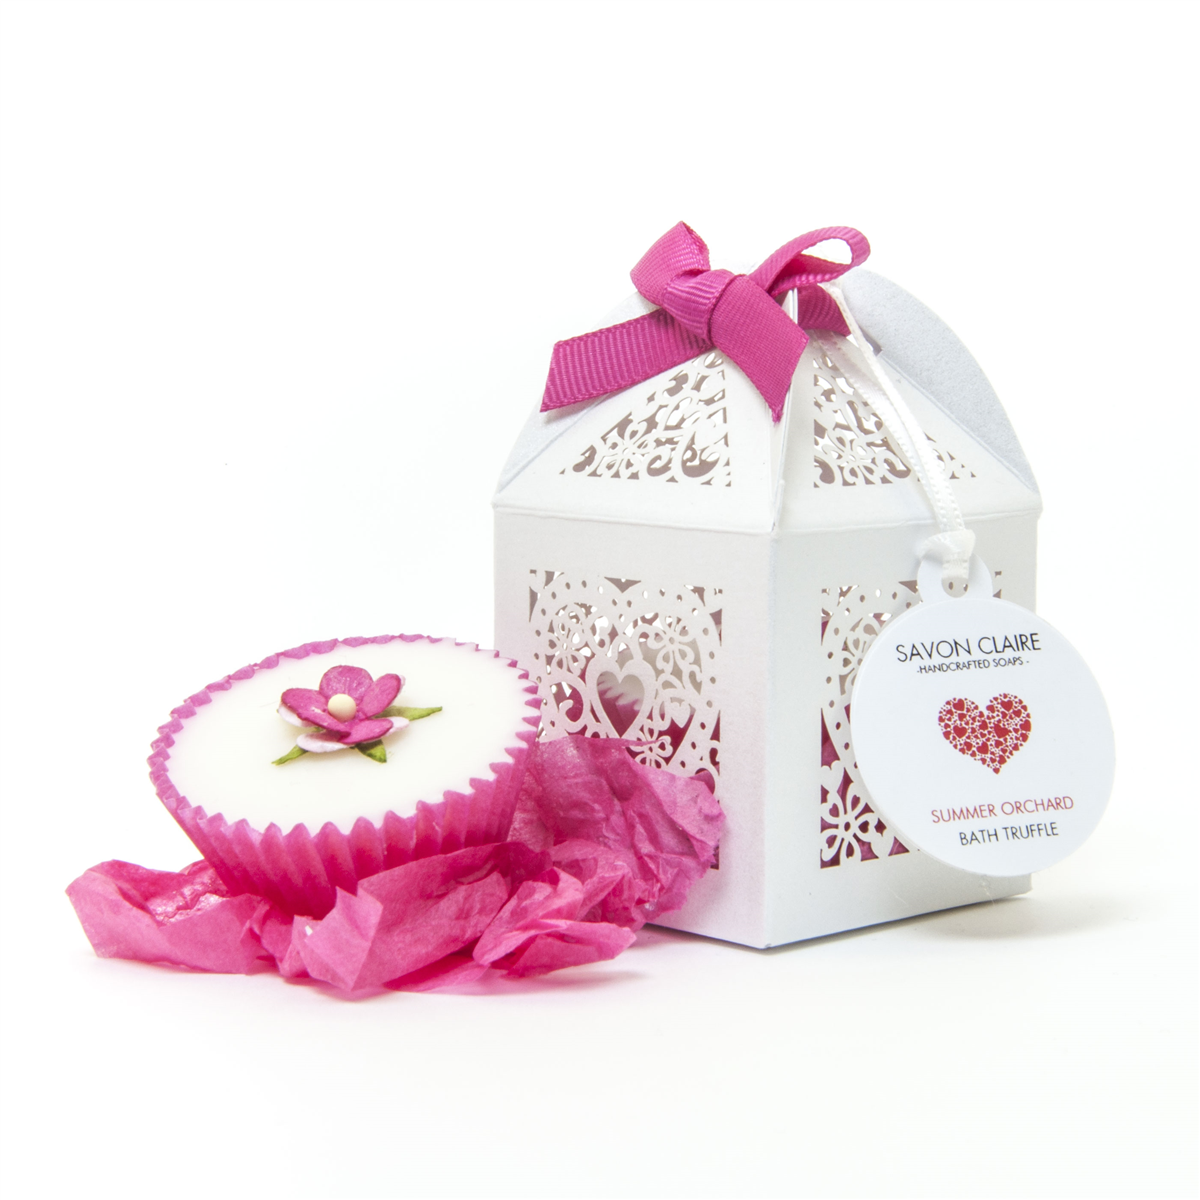 Wedding favors by Savon Claire - Claire Lohan in Sheffield, England ...